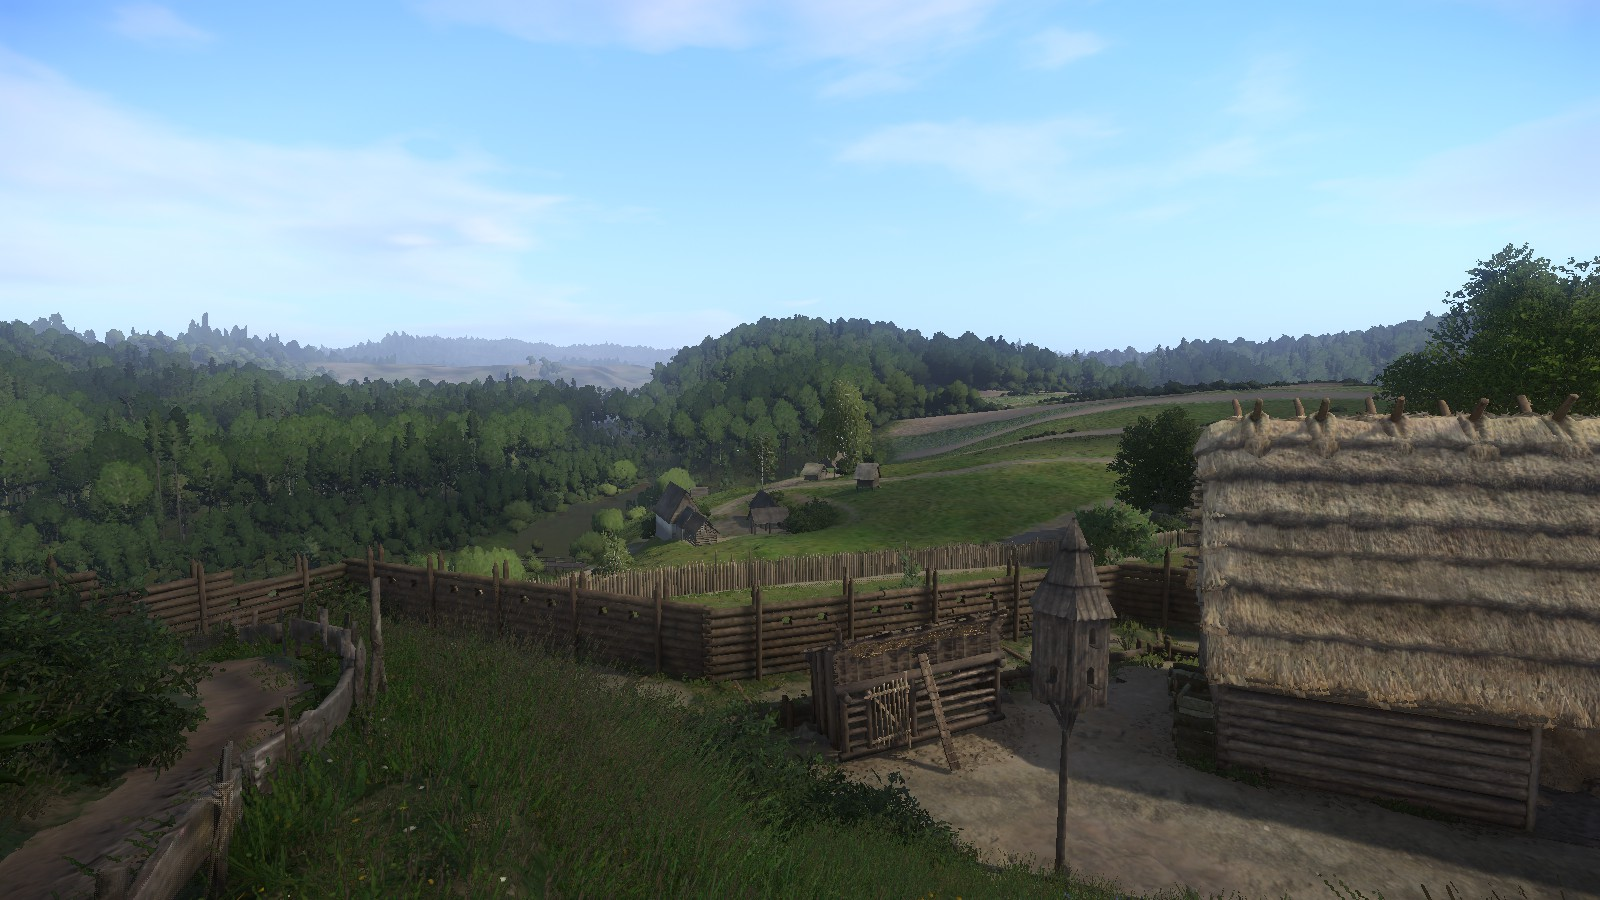 Kingdom Come  Deliverance Screenshot 2019.02.12 - 02.00.34.34.jpg - Kingdom Come: Deliverance